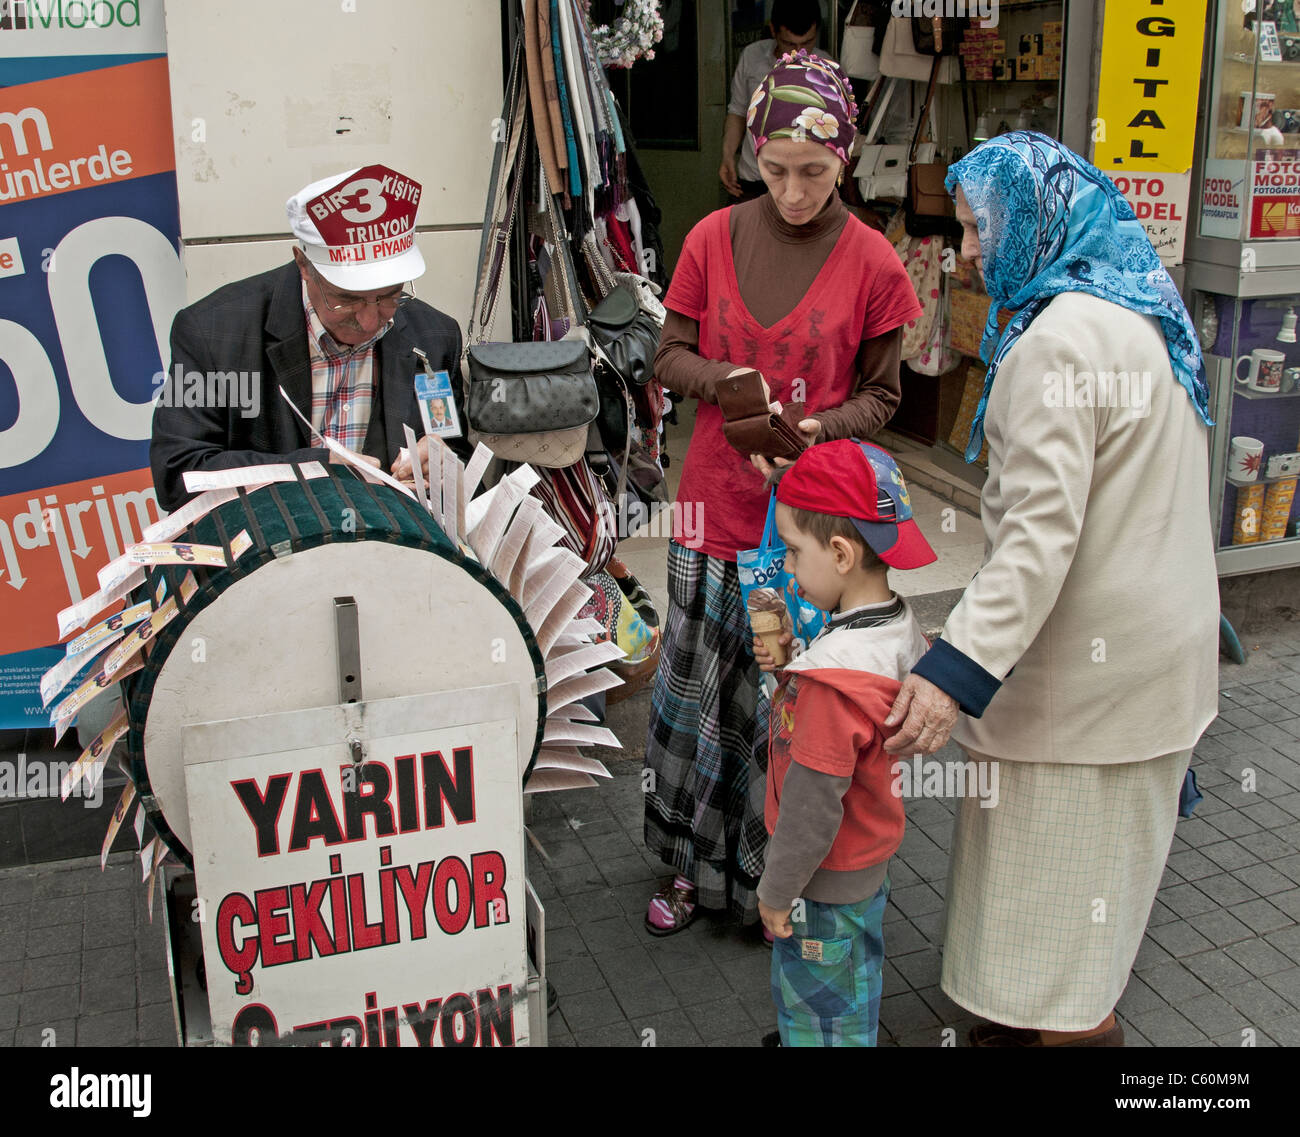 Istanbul Turkey lottery gamble gambling gambler - Stock Image